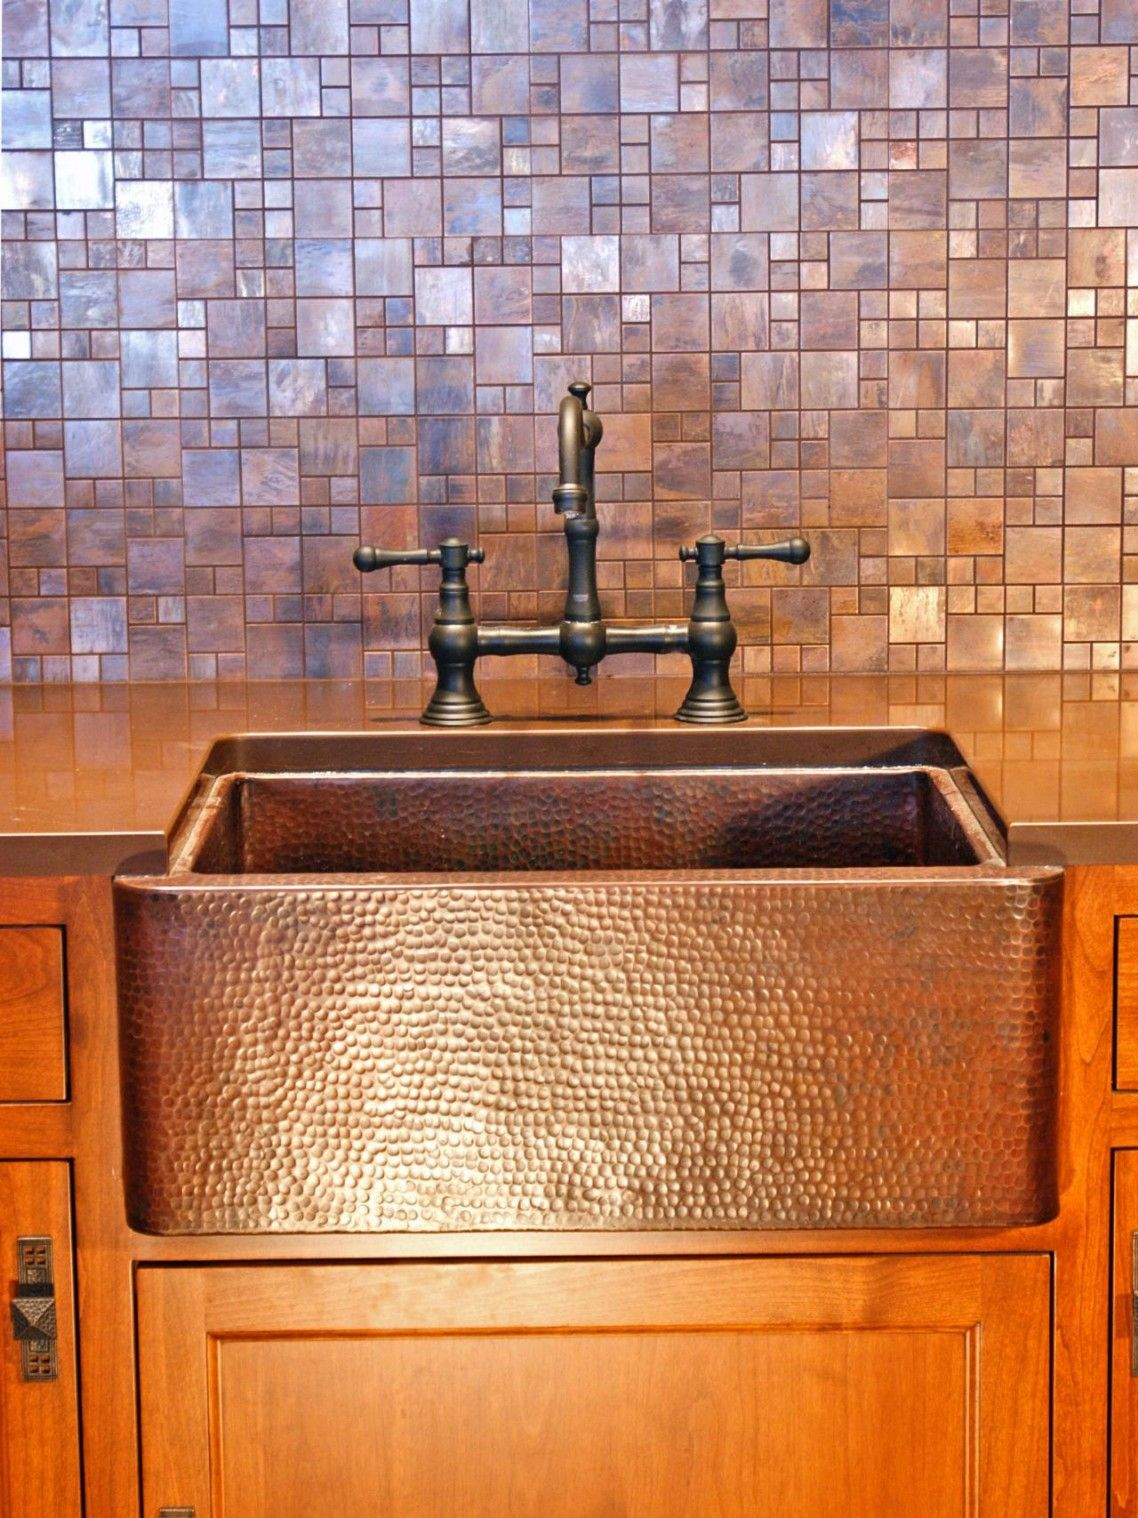 Copper Laminate Countertops Decor And Tips Copper Farmhouse Sink And Bridge Faucet With